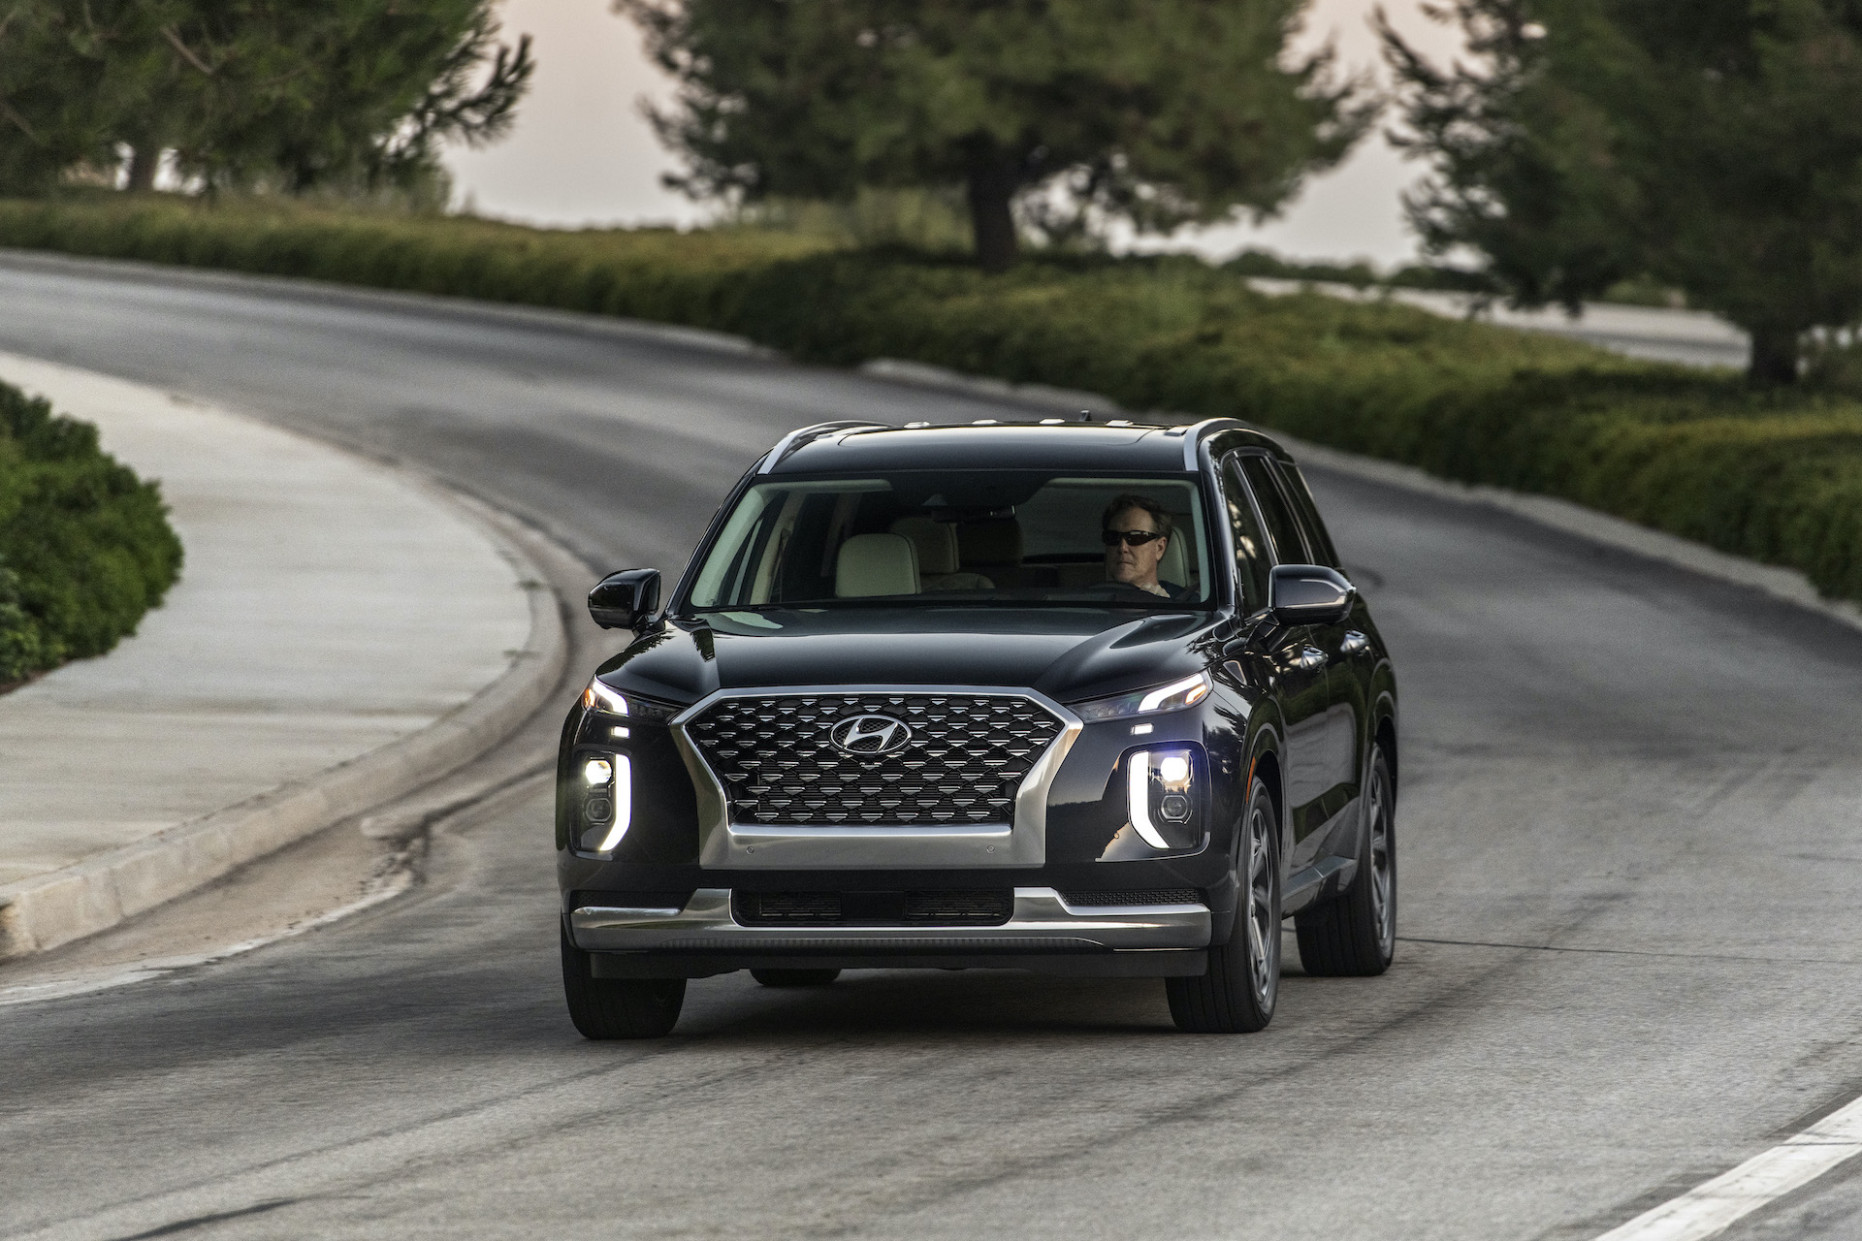 Redesign and Concept Price Of 2022 Hyundai Palisade